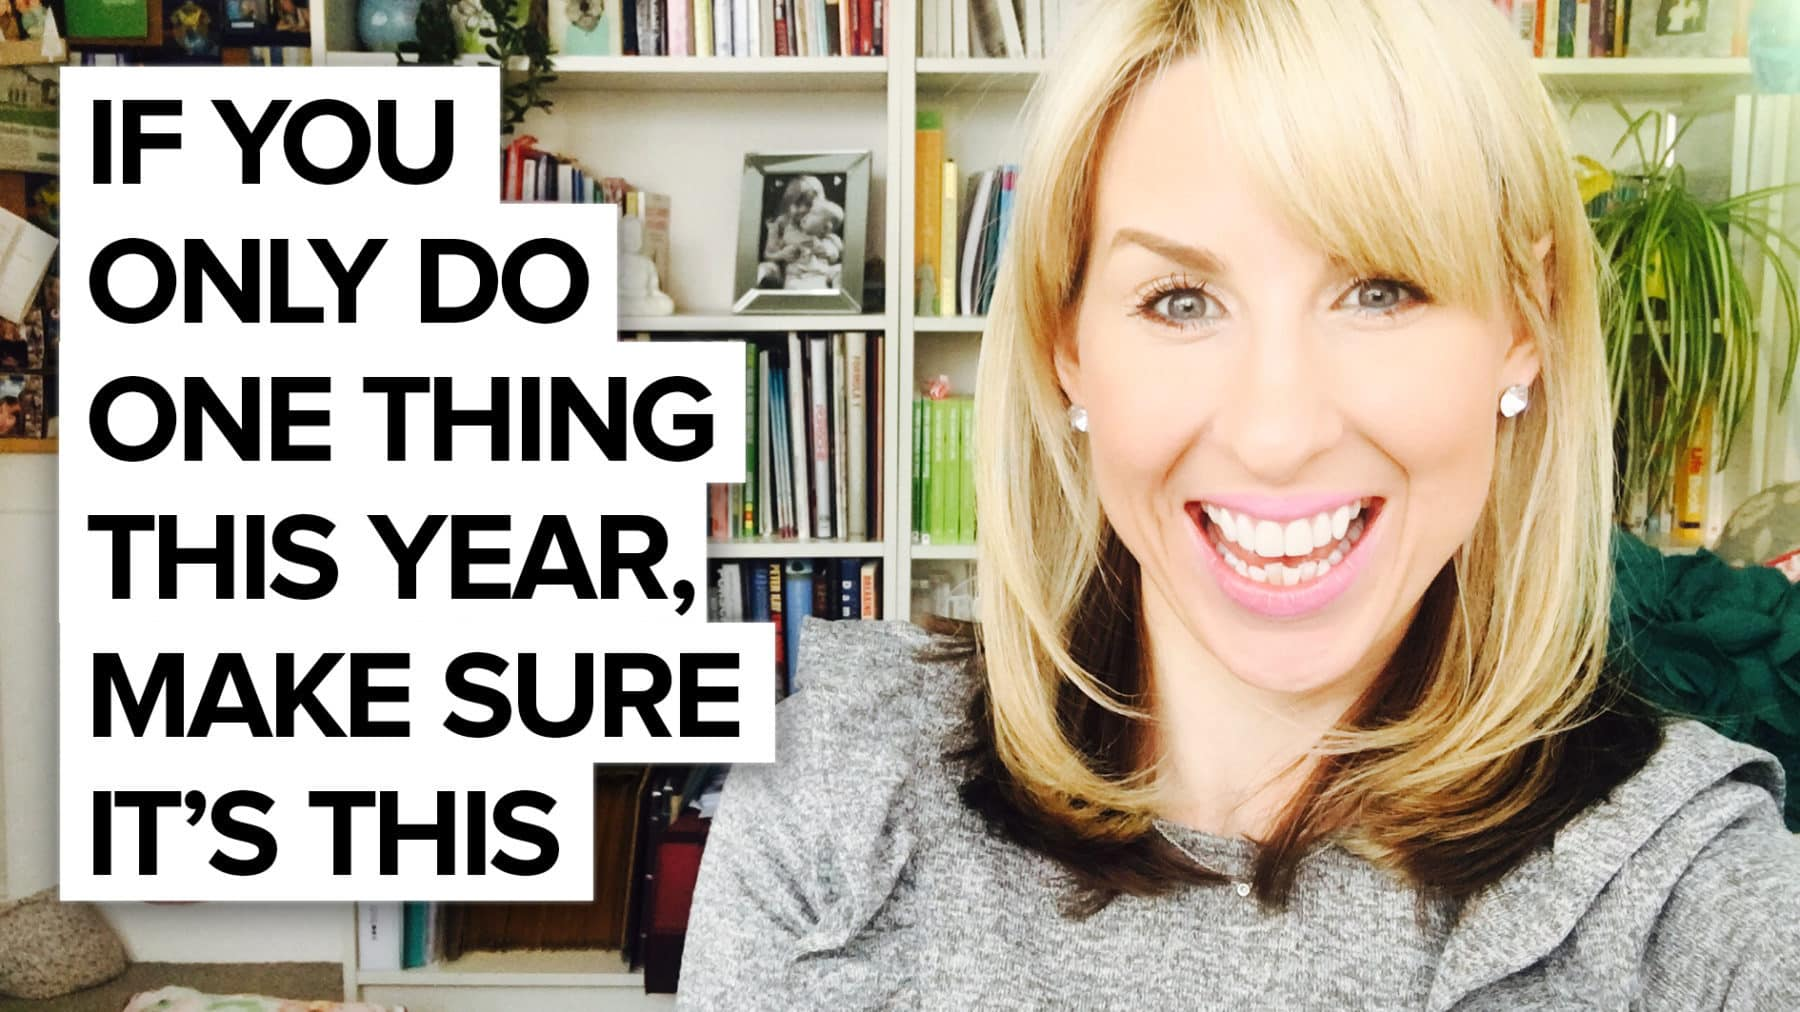 If you only do one thing this year, make sure it's this!